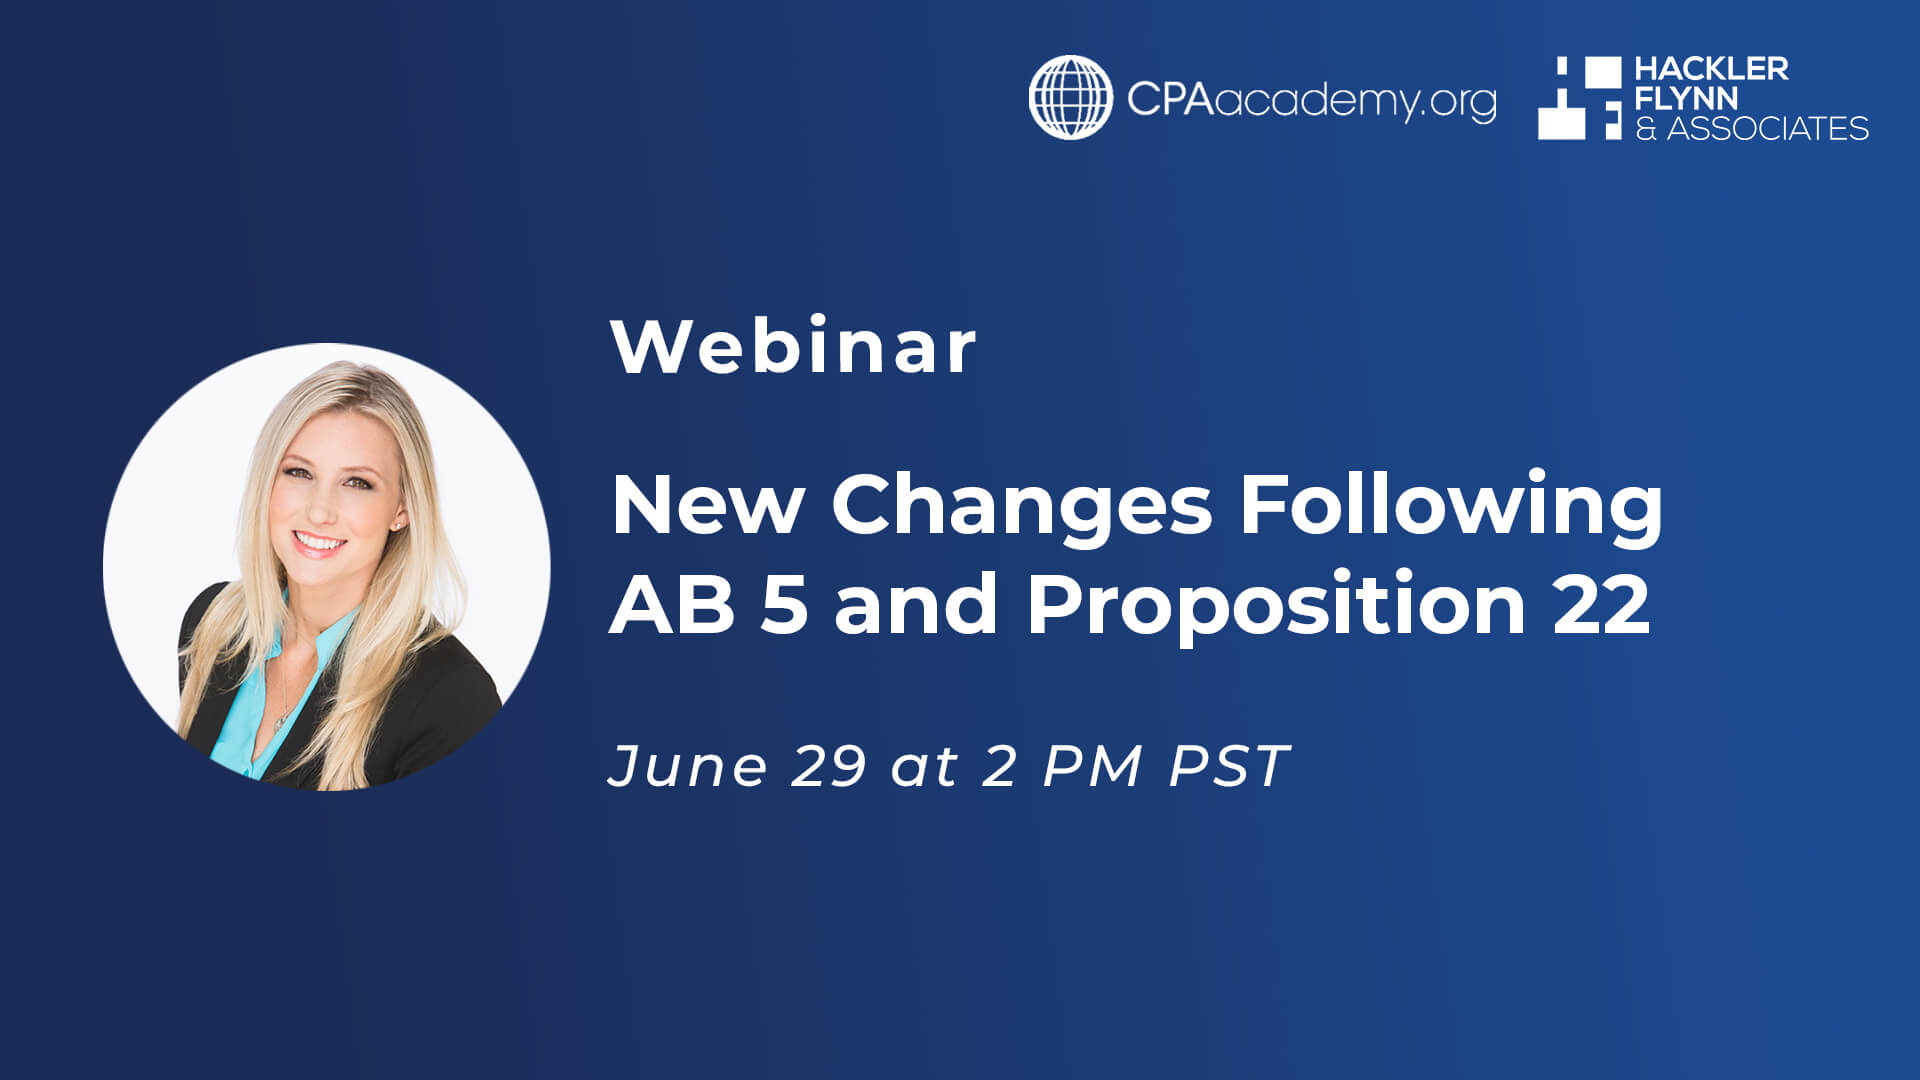 Webinar Graphic for AB 5 and Prop 22 Changes